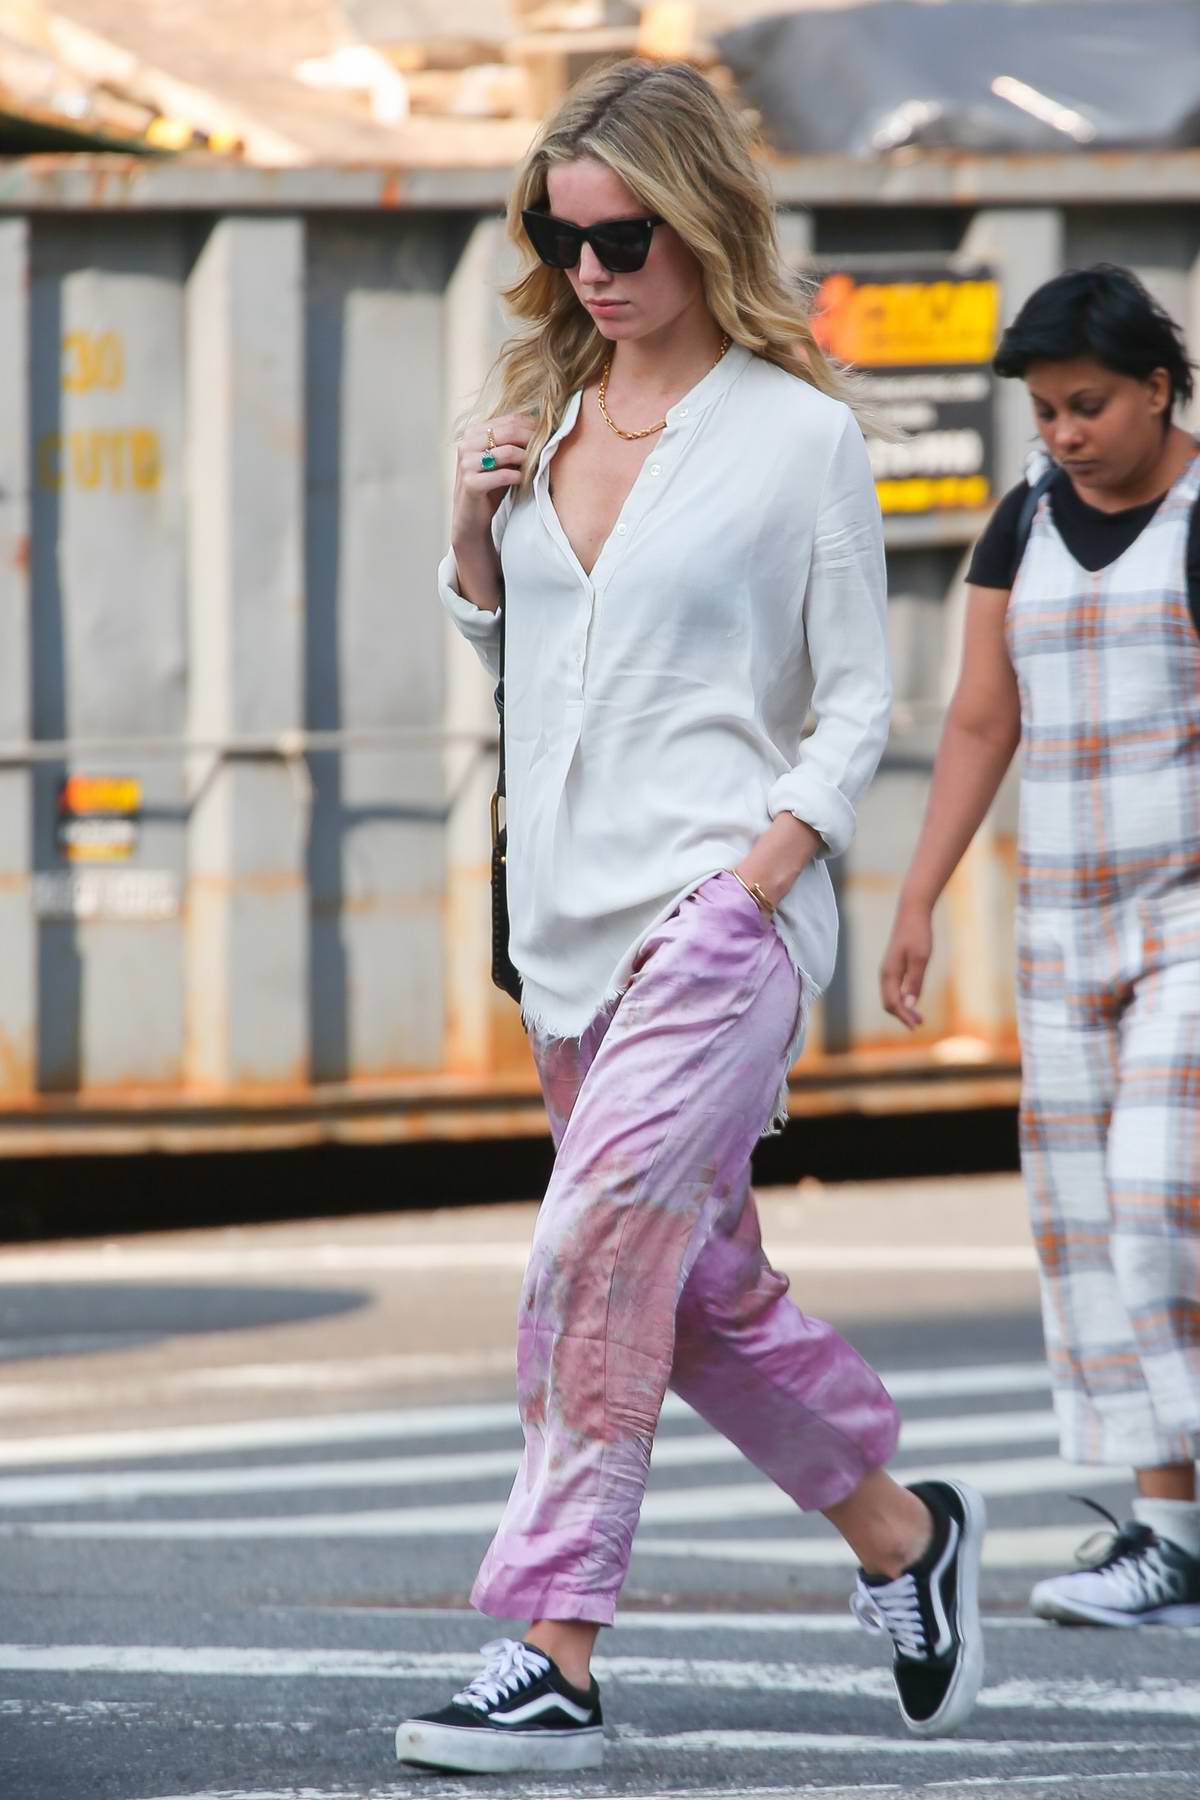 Annabelle Wallis looks stylish in an off-white shirt and pink satin pants while out in New York City